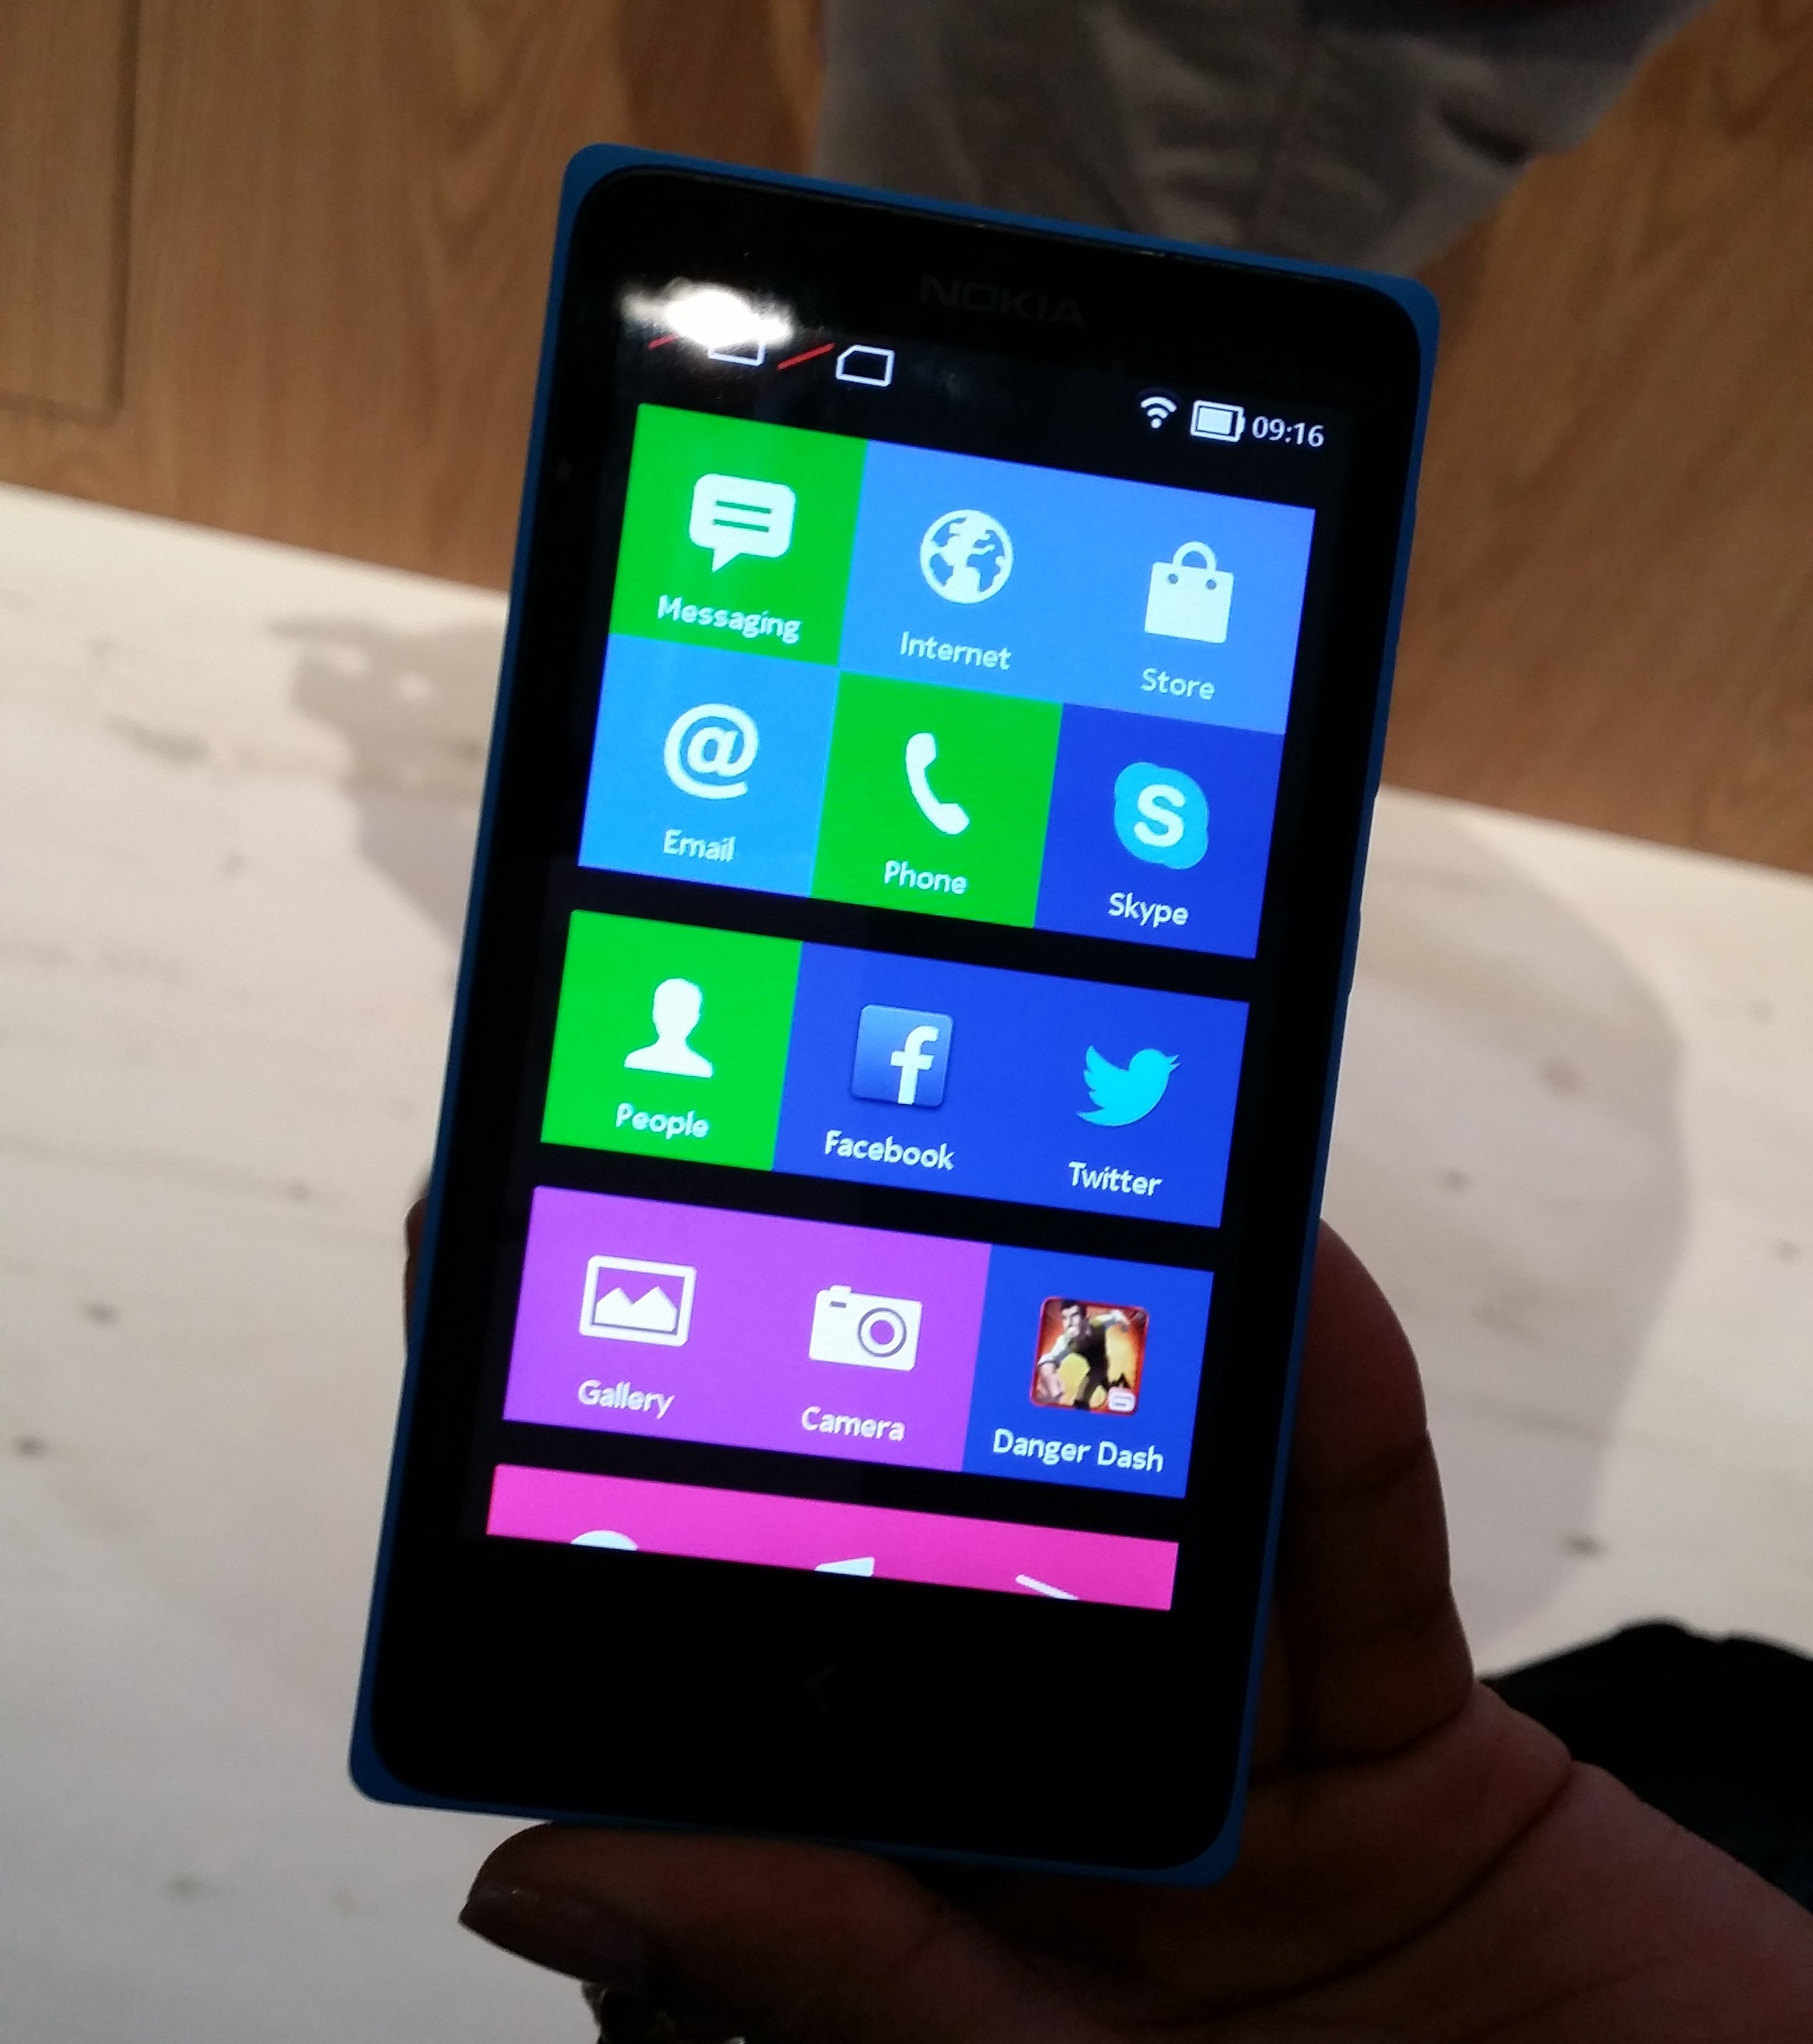 Phone Nokia Android Based Phone hands on with the nokia x android based smartphone like asha range it features fastlane ui that provides a chronological list of everything youve done phone so you can quickly j